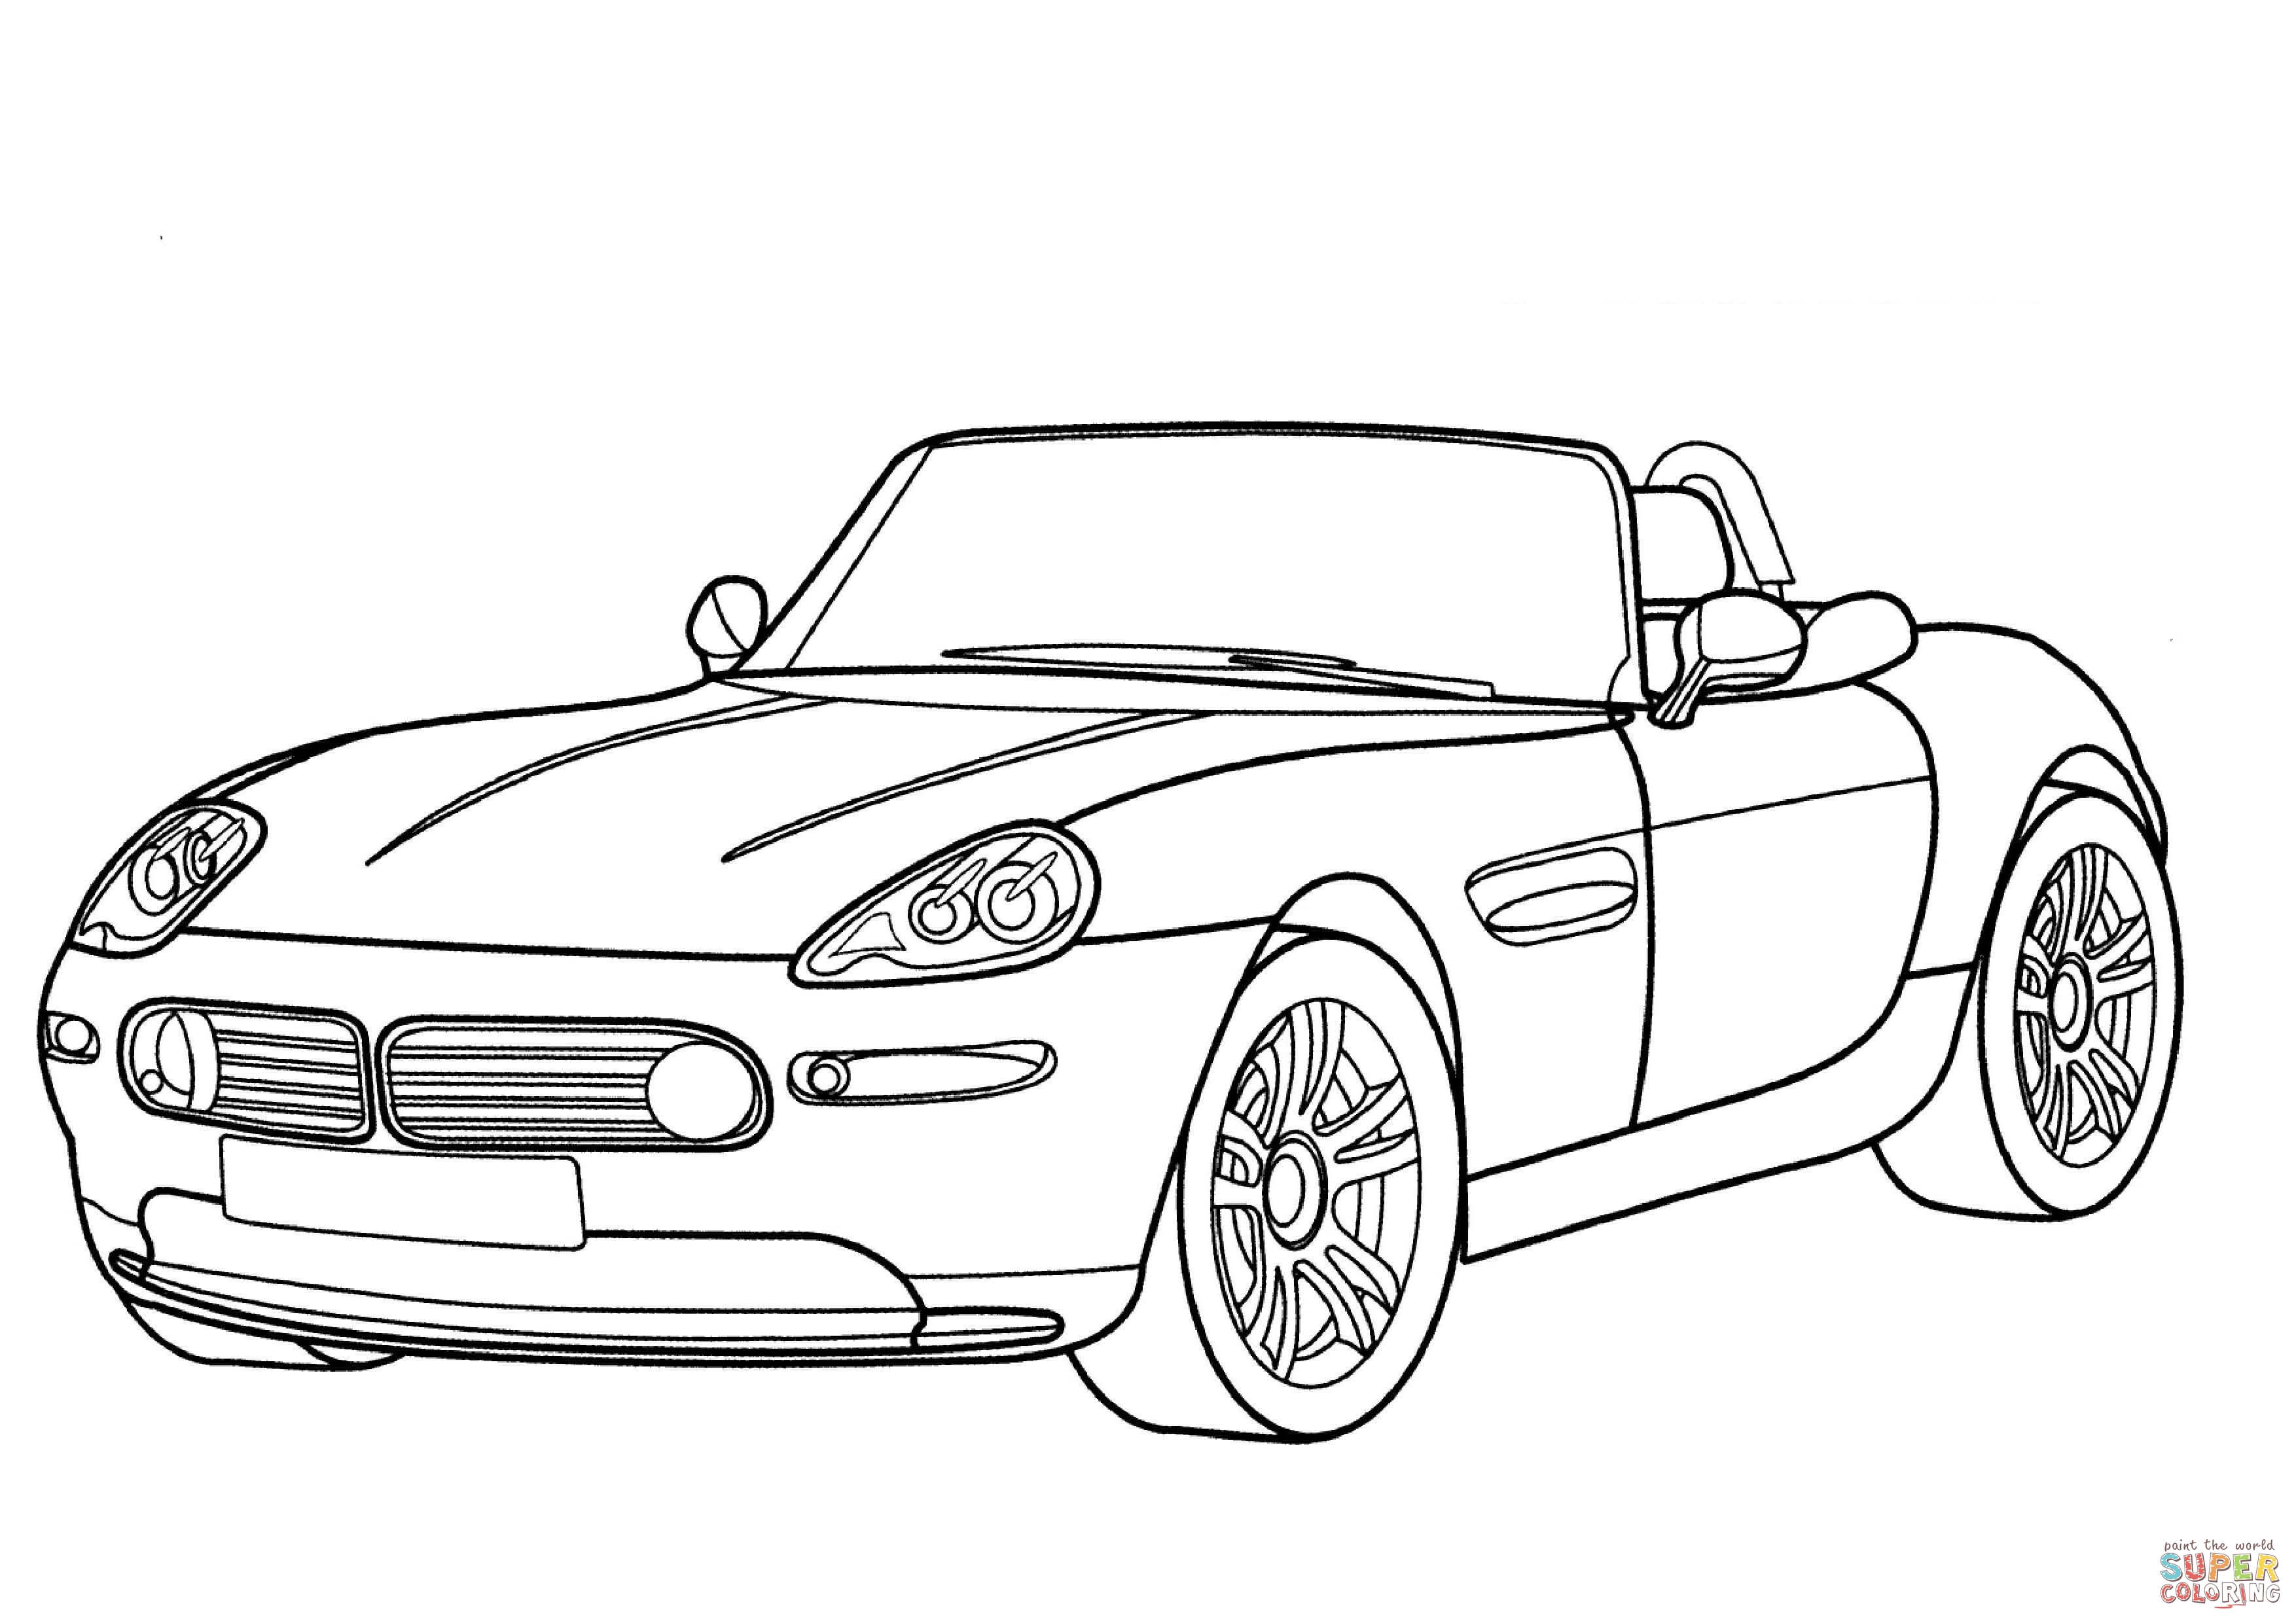 Bmw Z8 Cabriolet Coloring Page Free Printable Coloring Pages